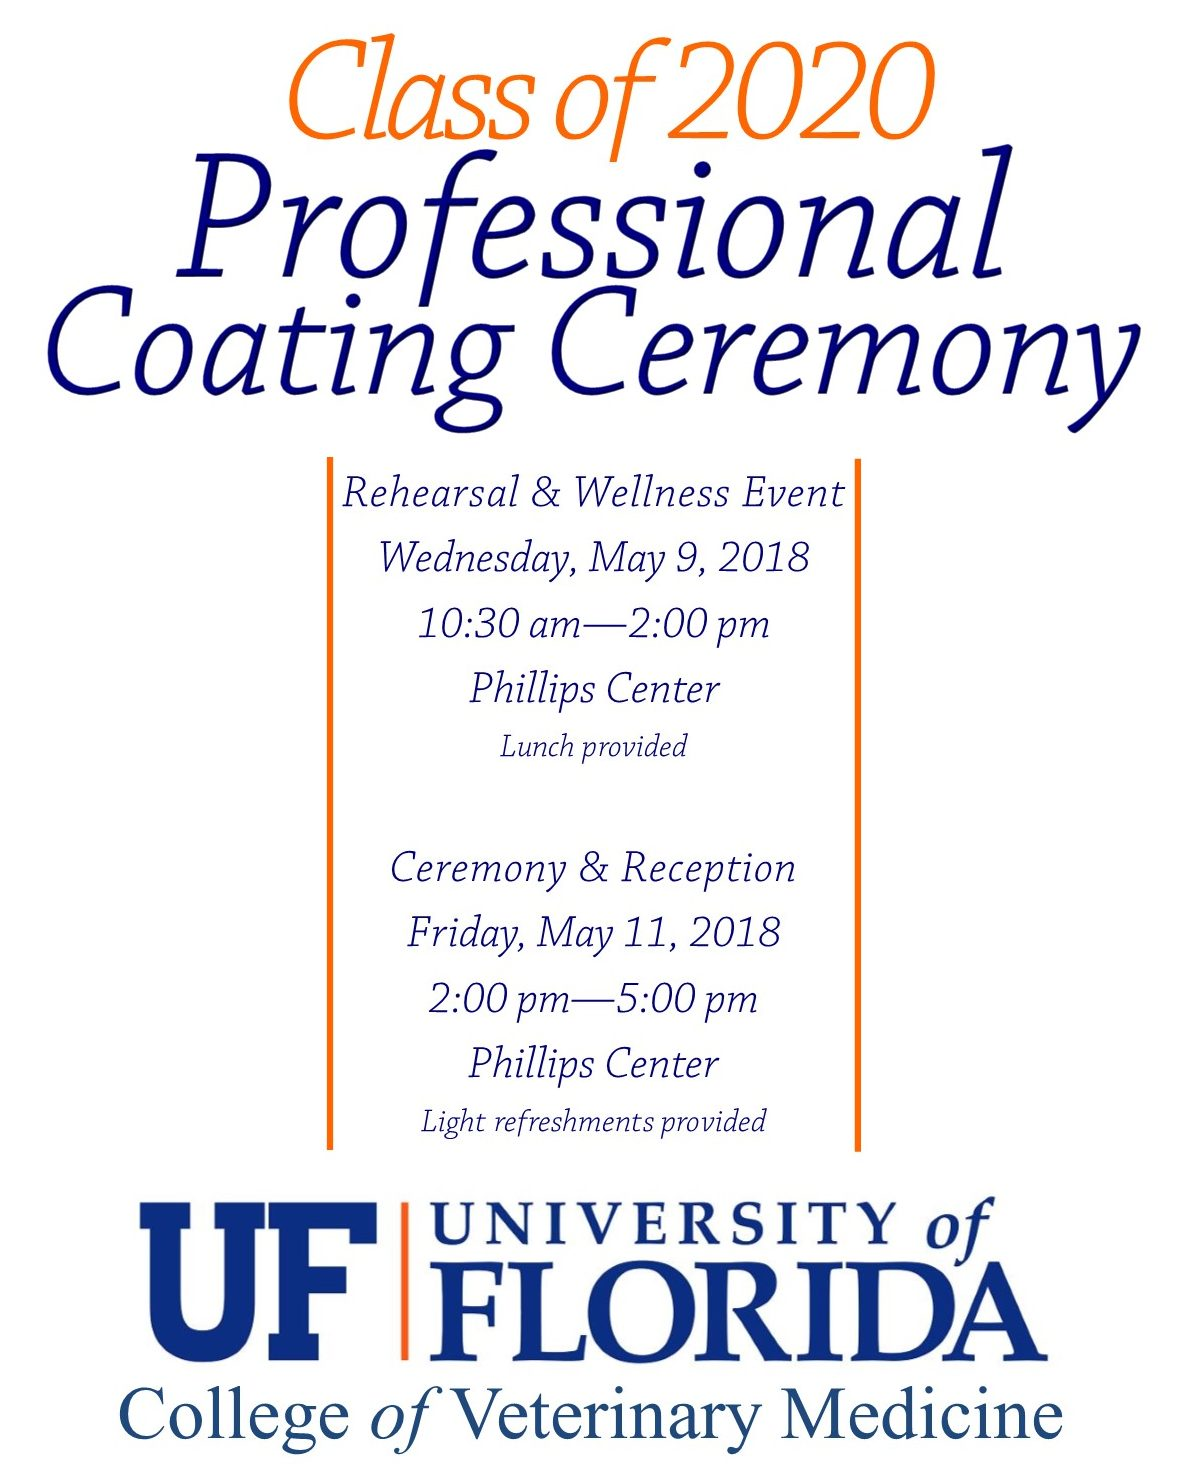 Coating Ceremony Information